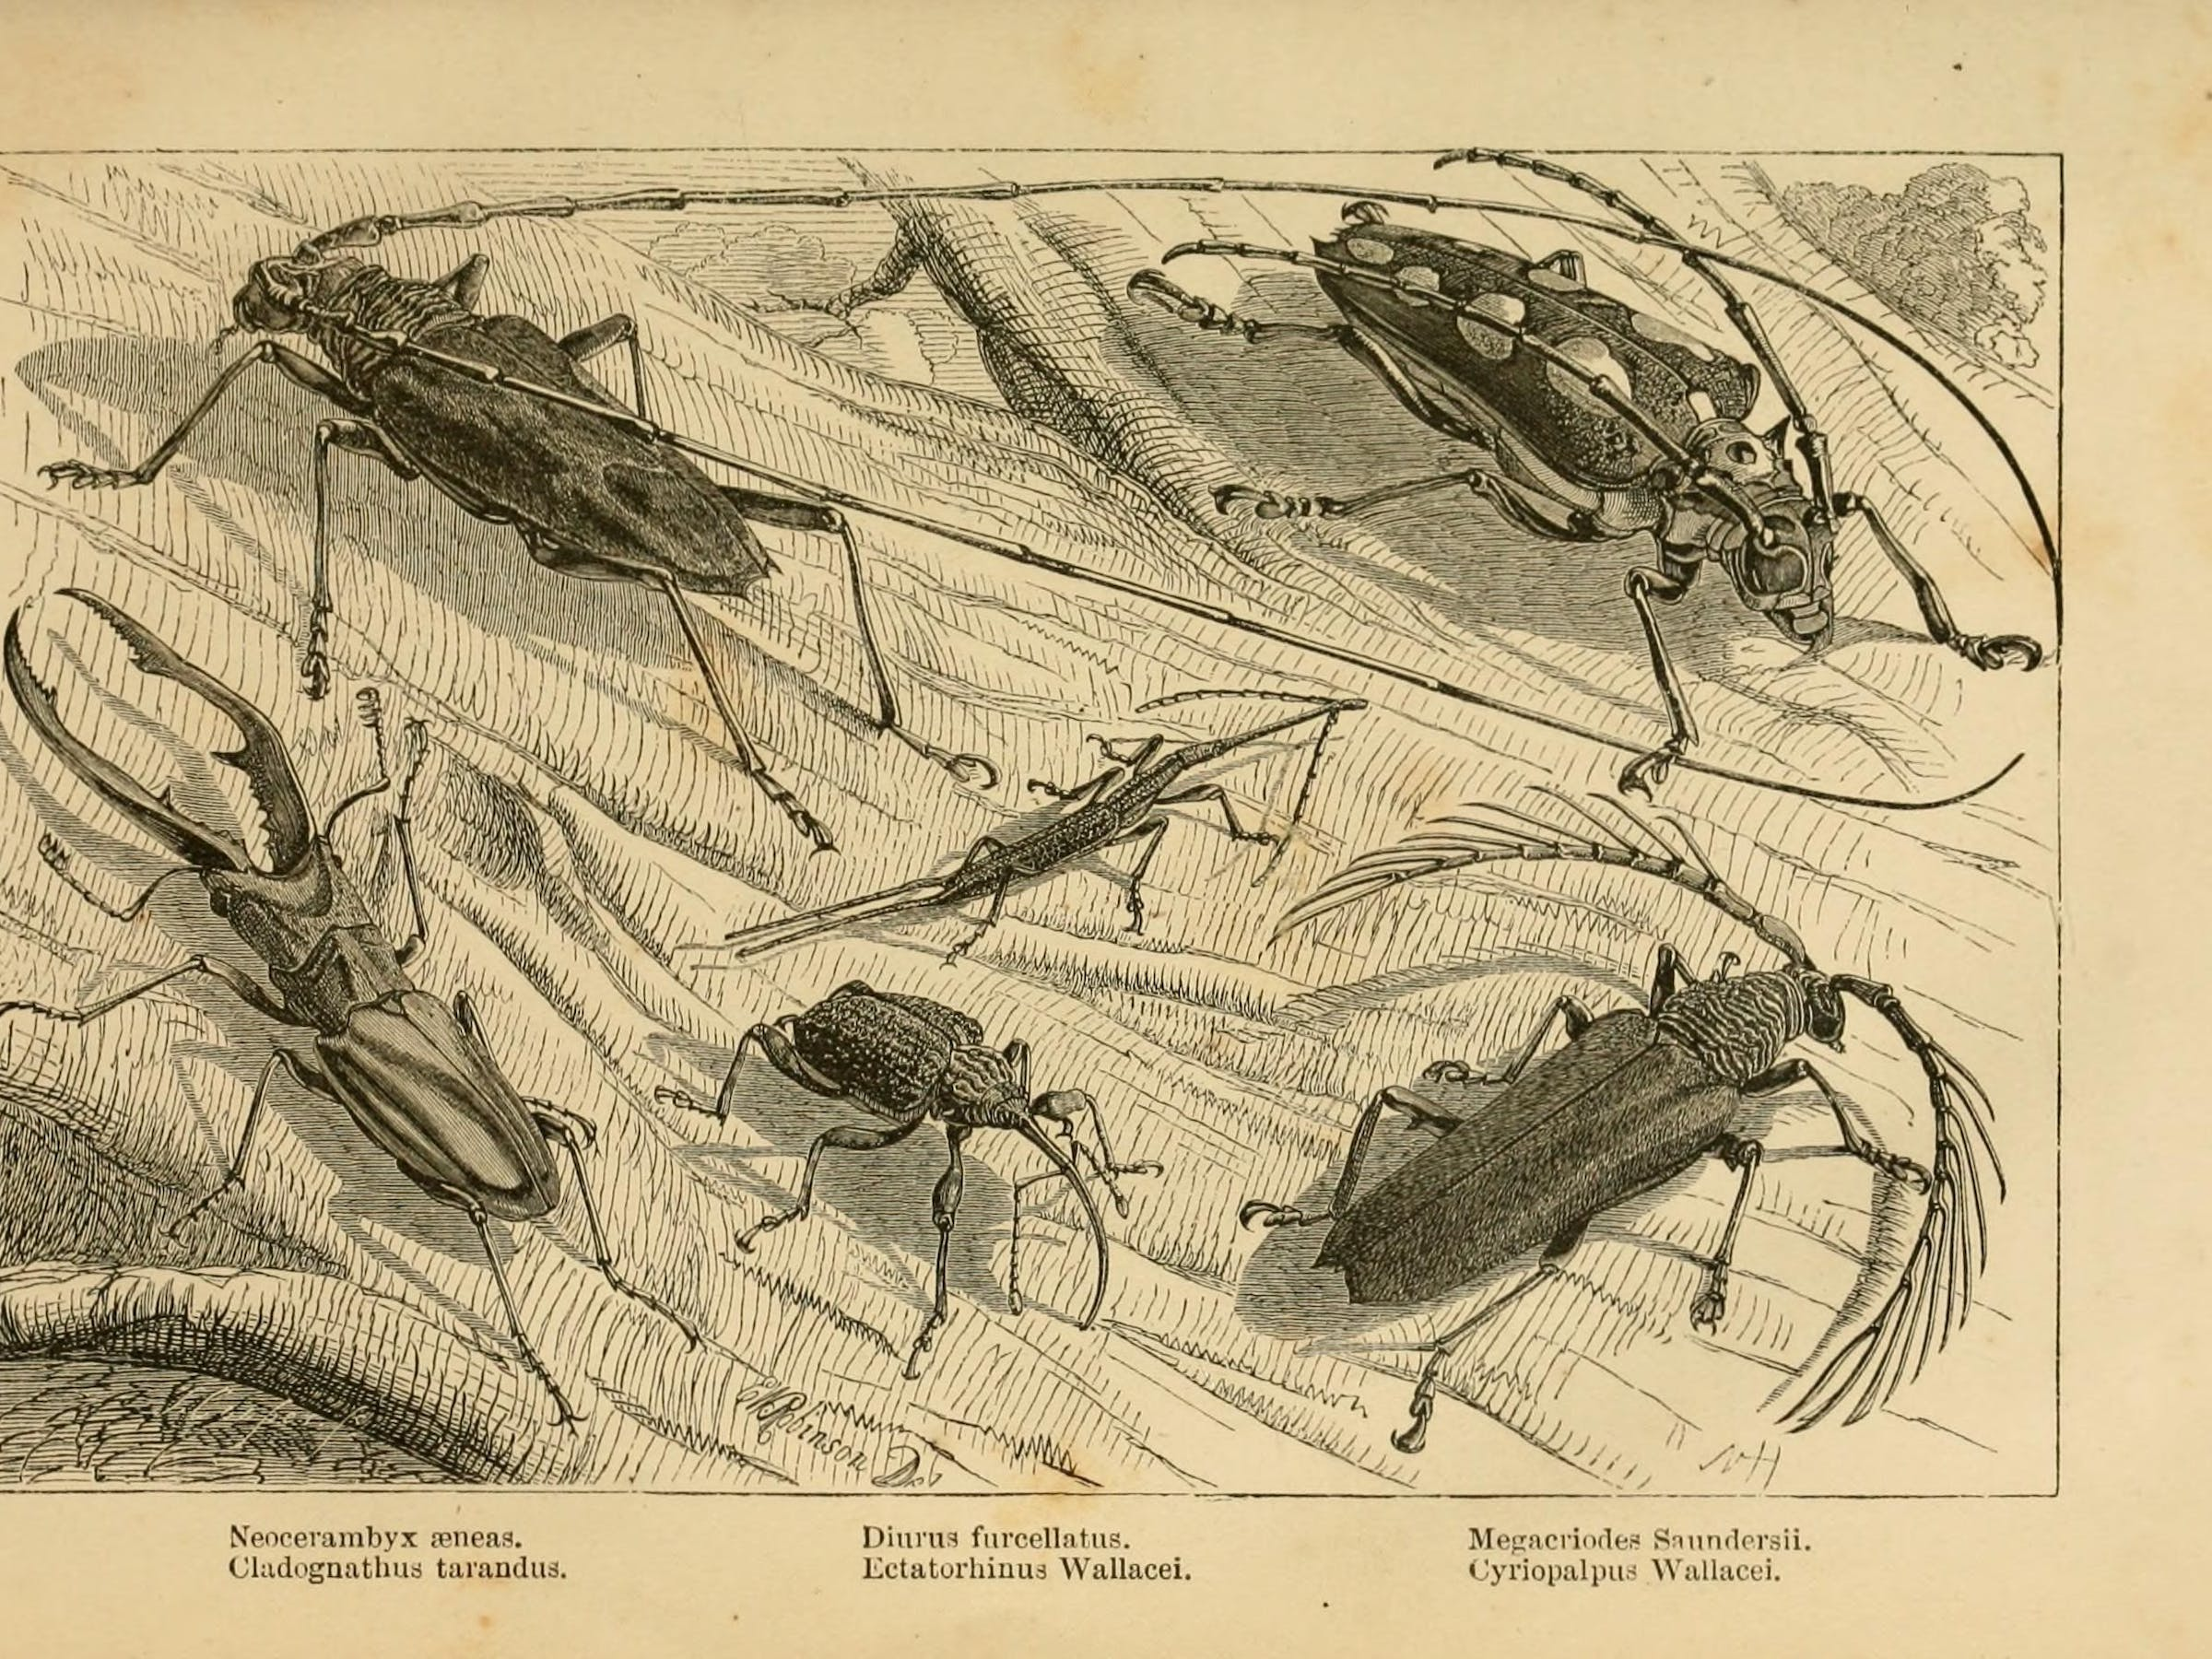 Some of the 'remarkable beetles' Wallace collected in Borneo.